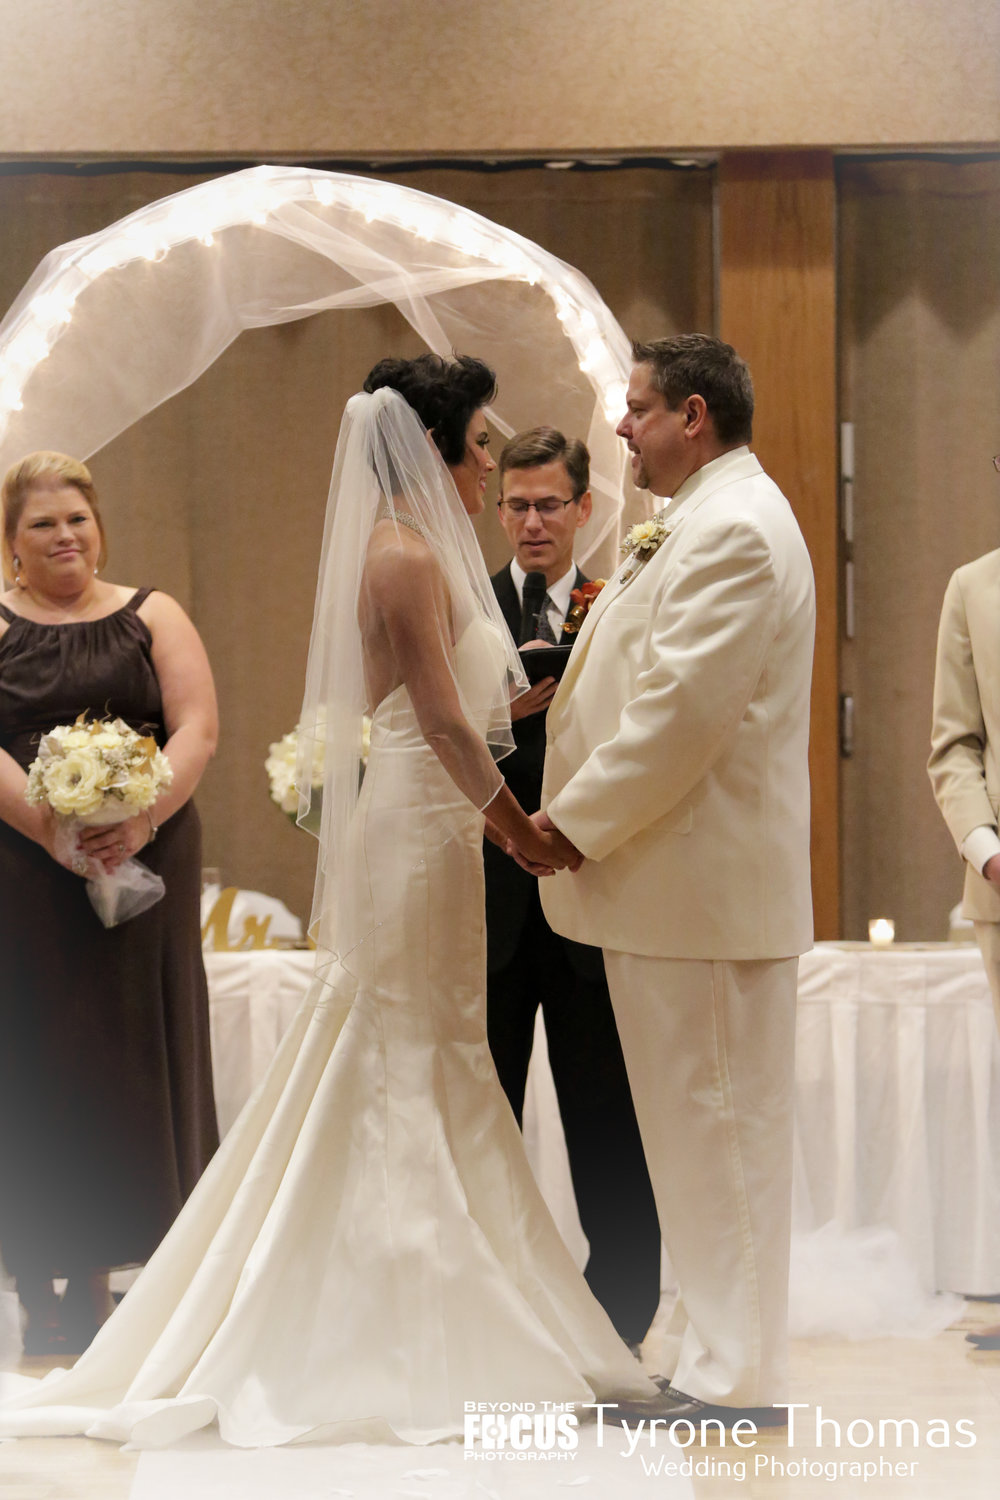 Brian_Michele Wedding Ceremony70.jpg